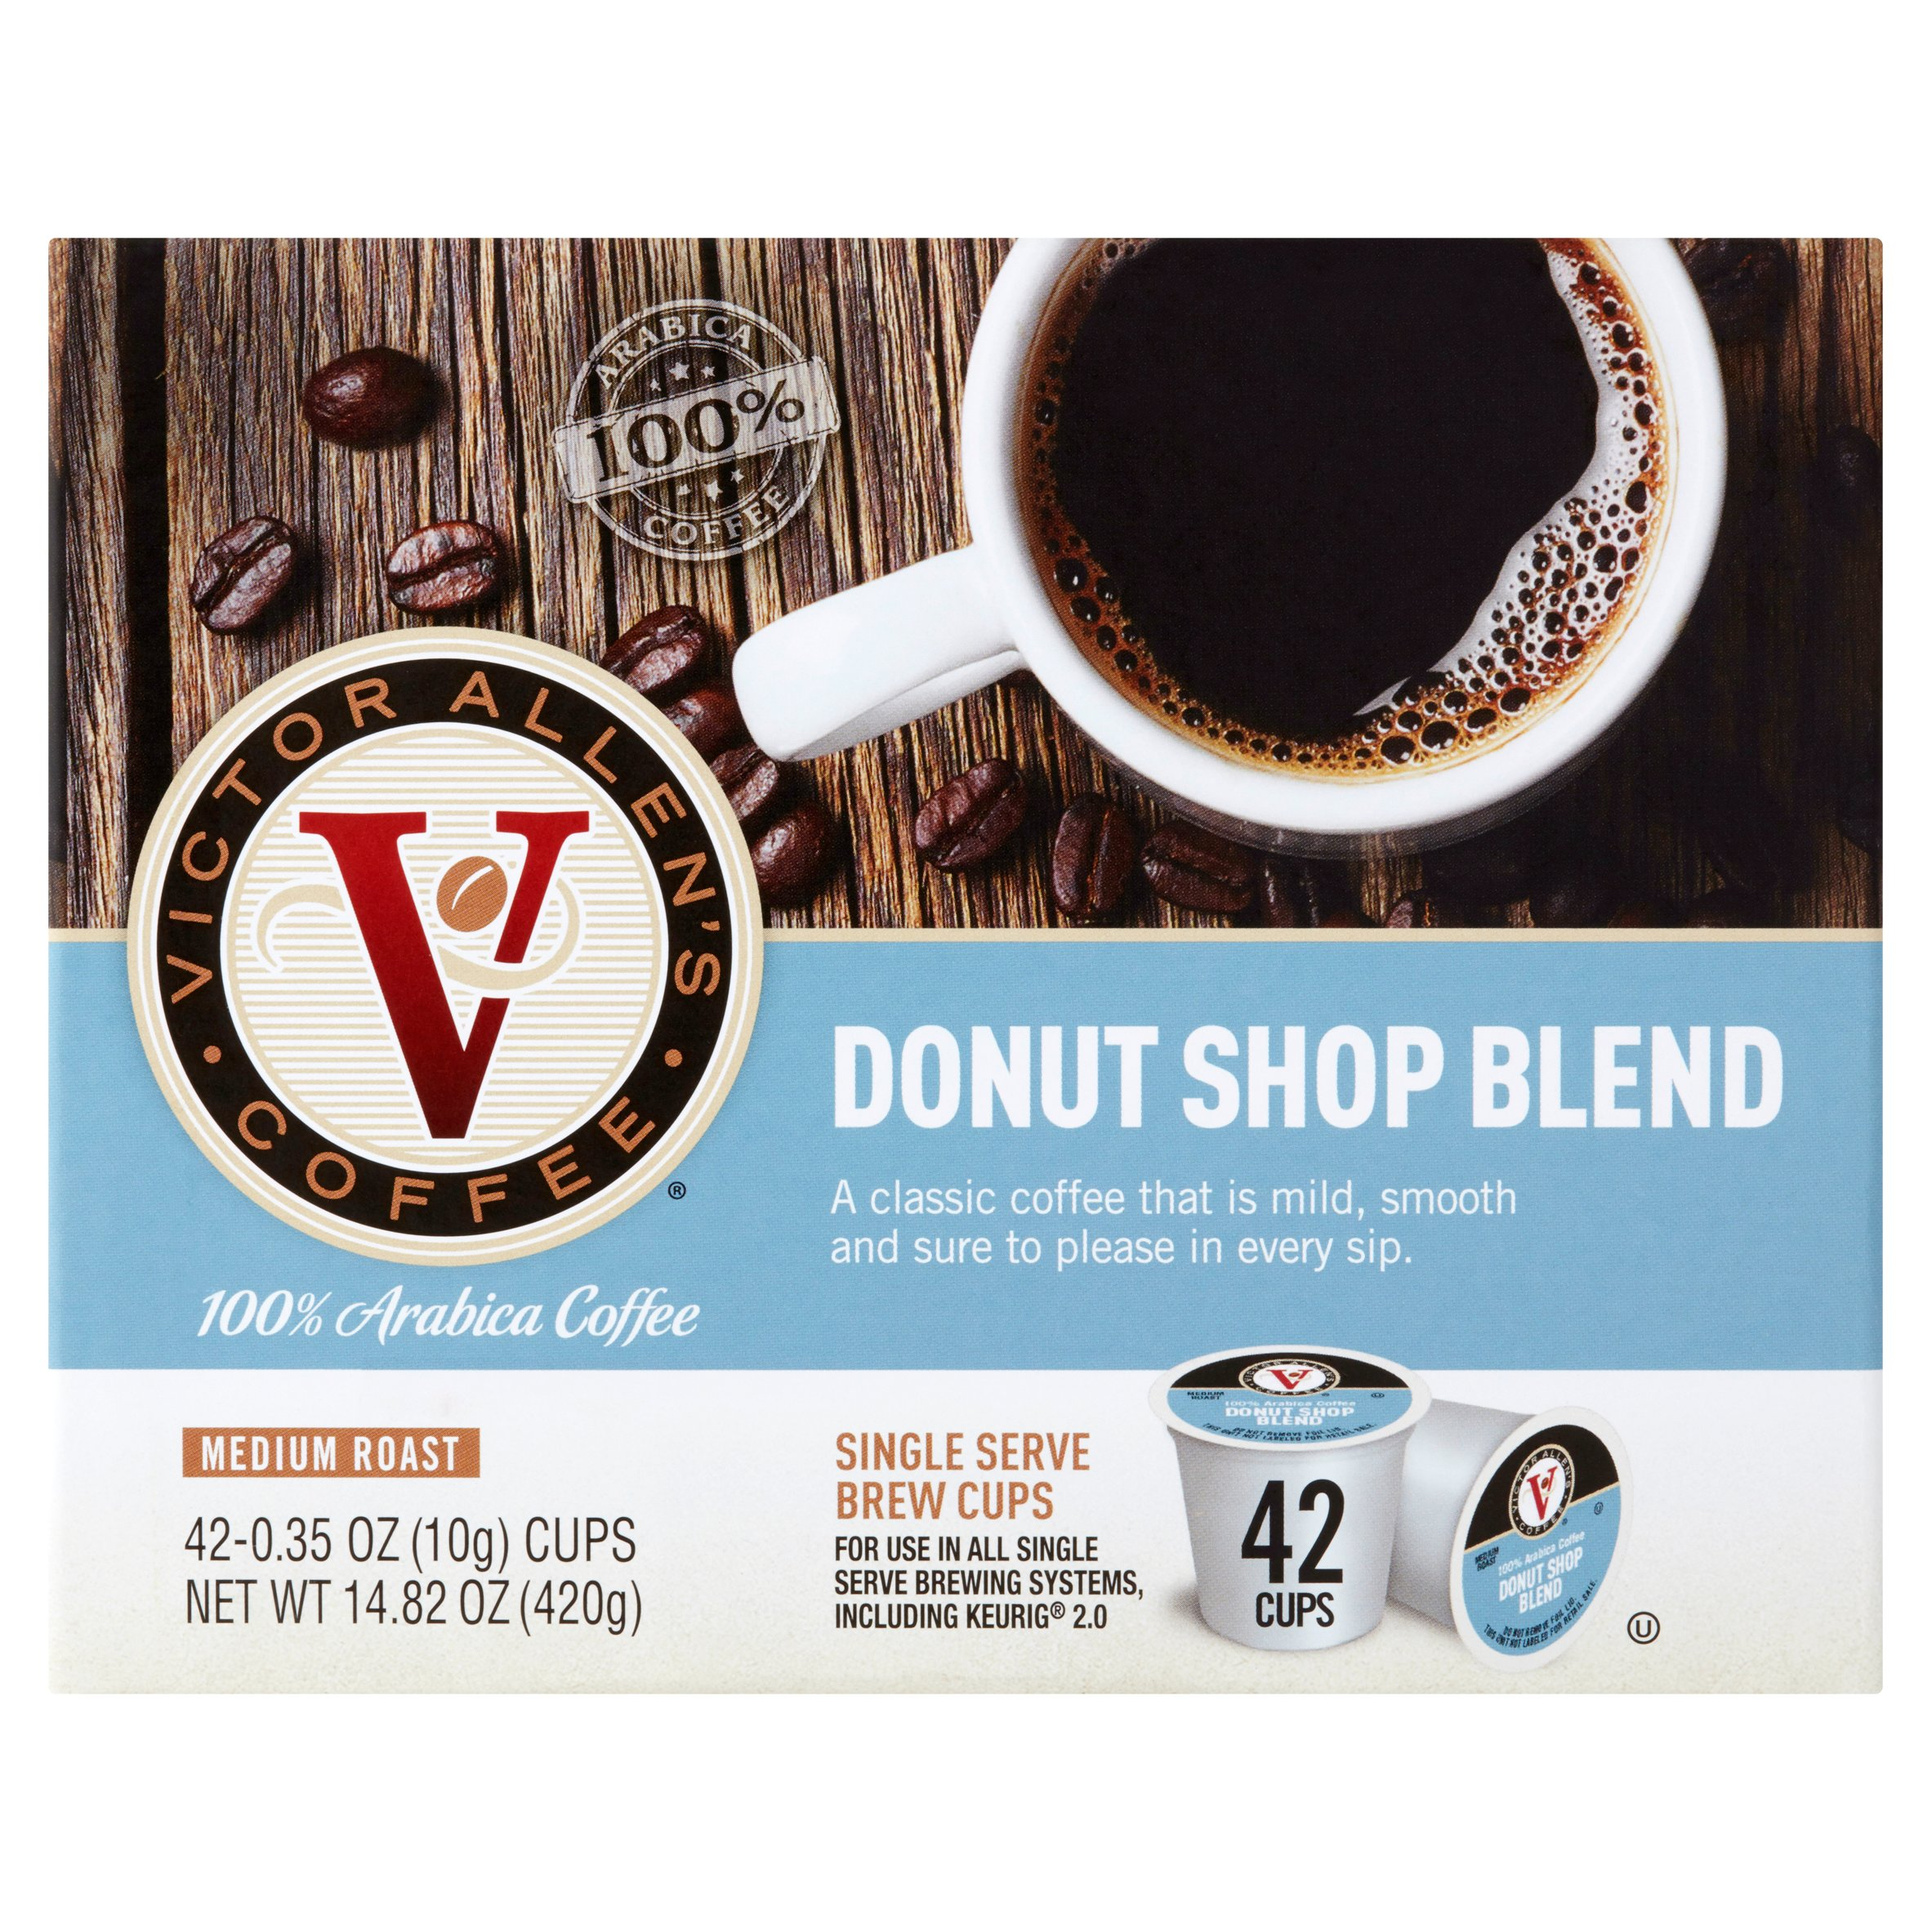 Victor Allen's Coffee Donut Shop Blend Medium Roast, 0.35 oz, 42 count